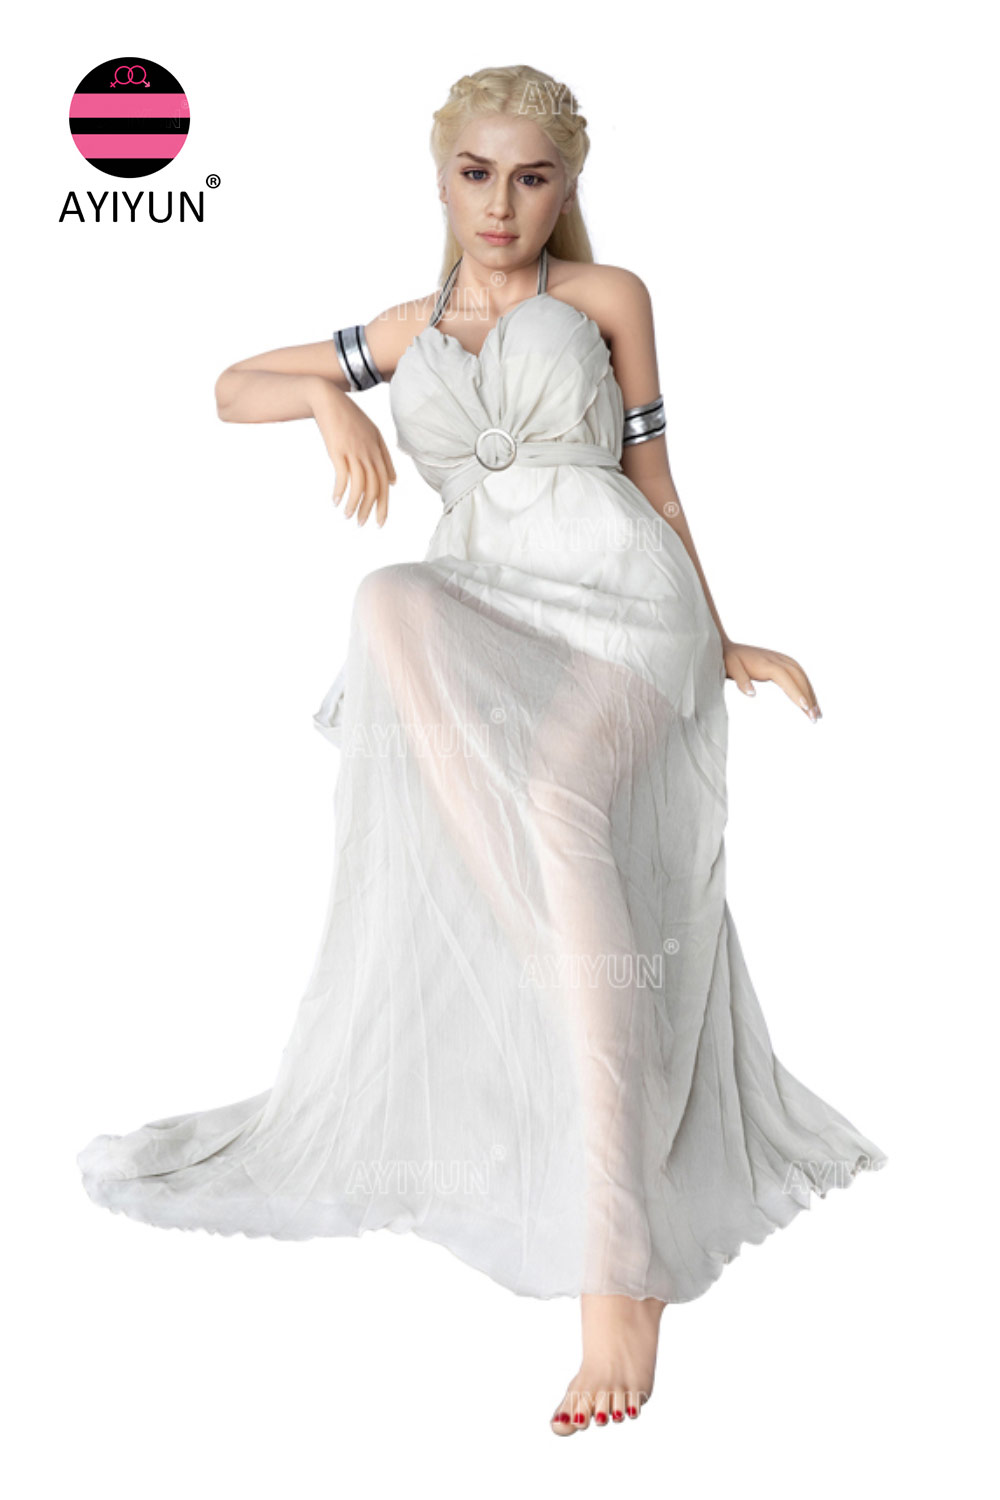 Silicone Sex Doll In A White Dress